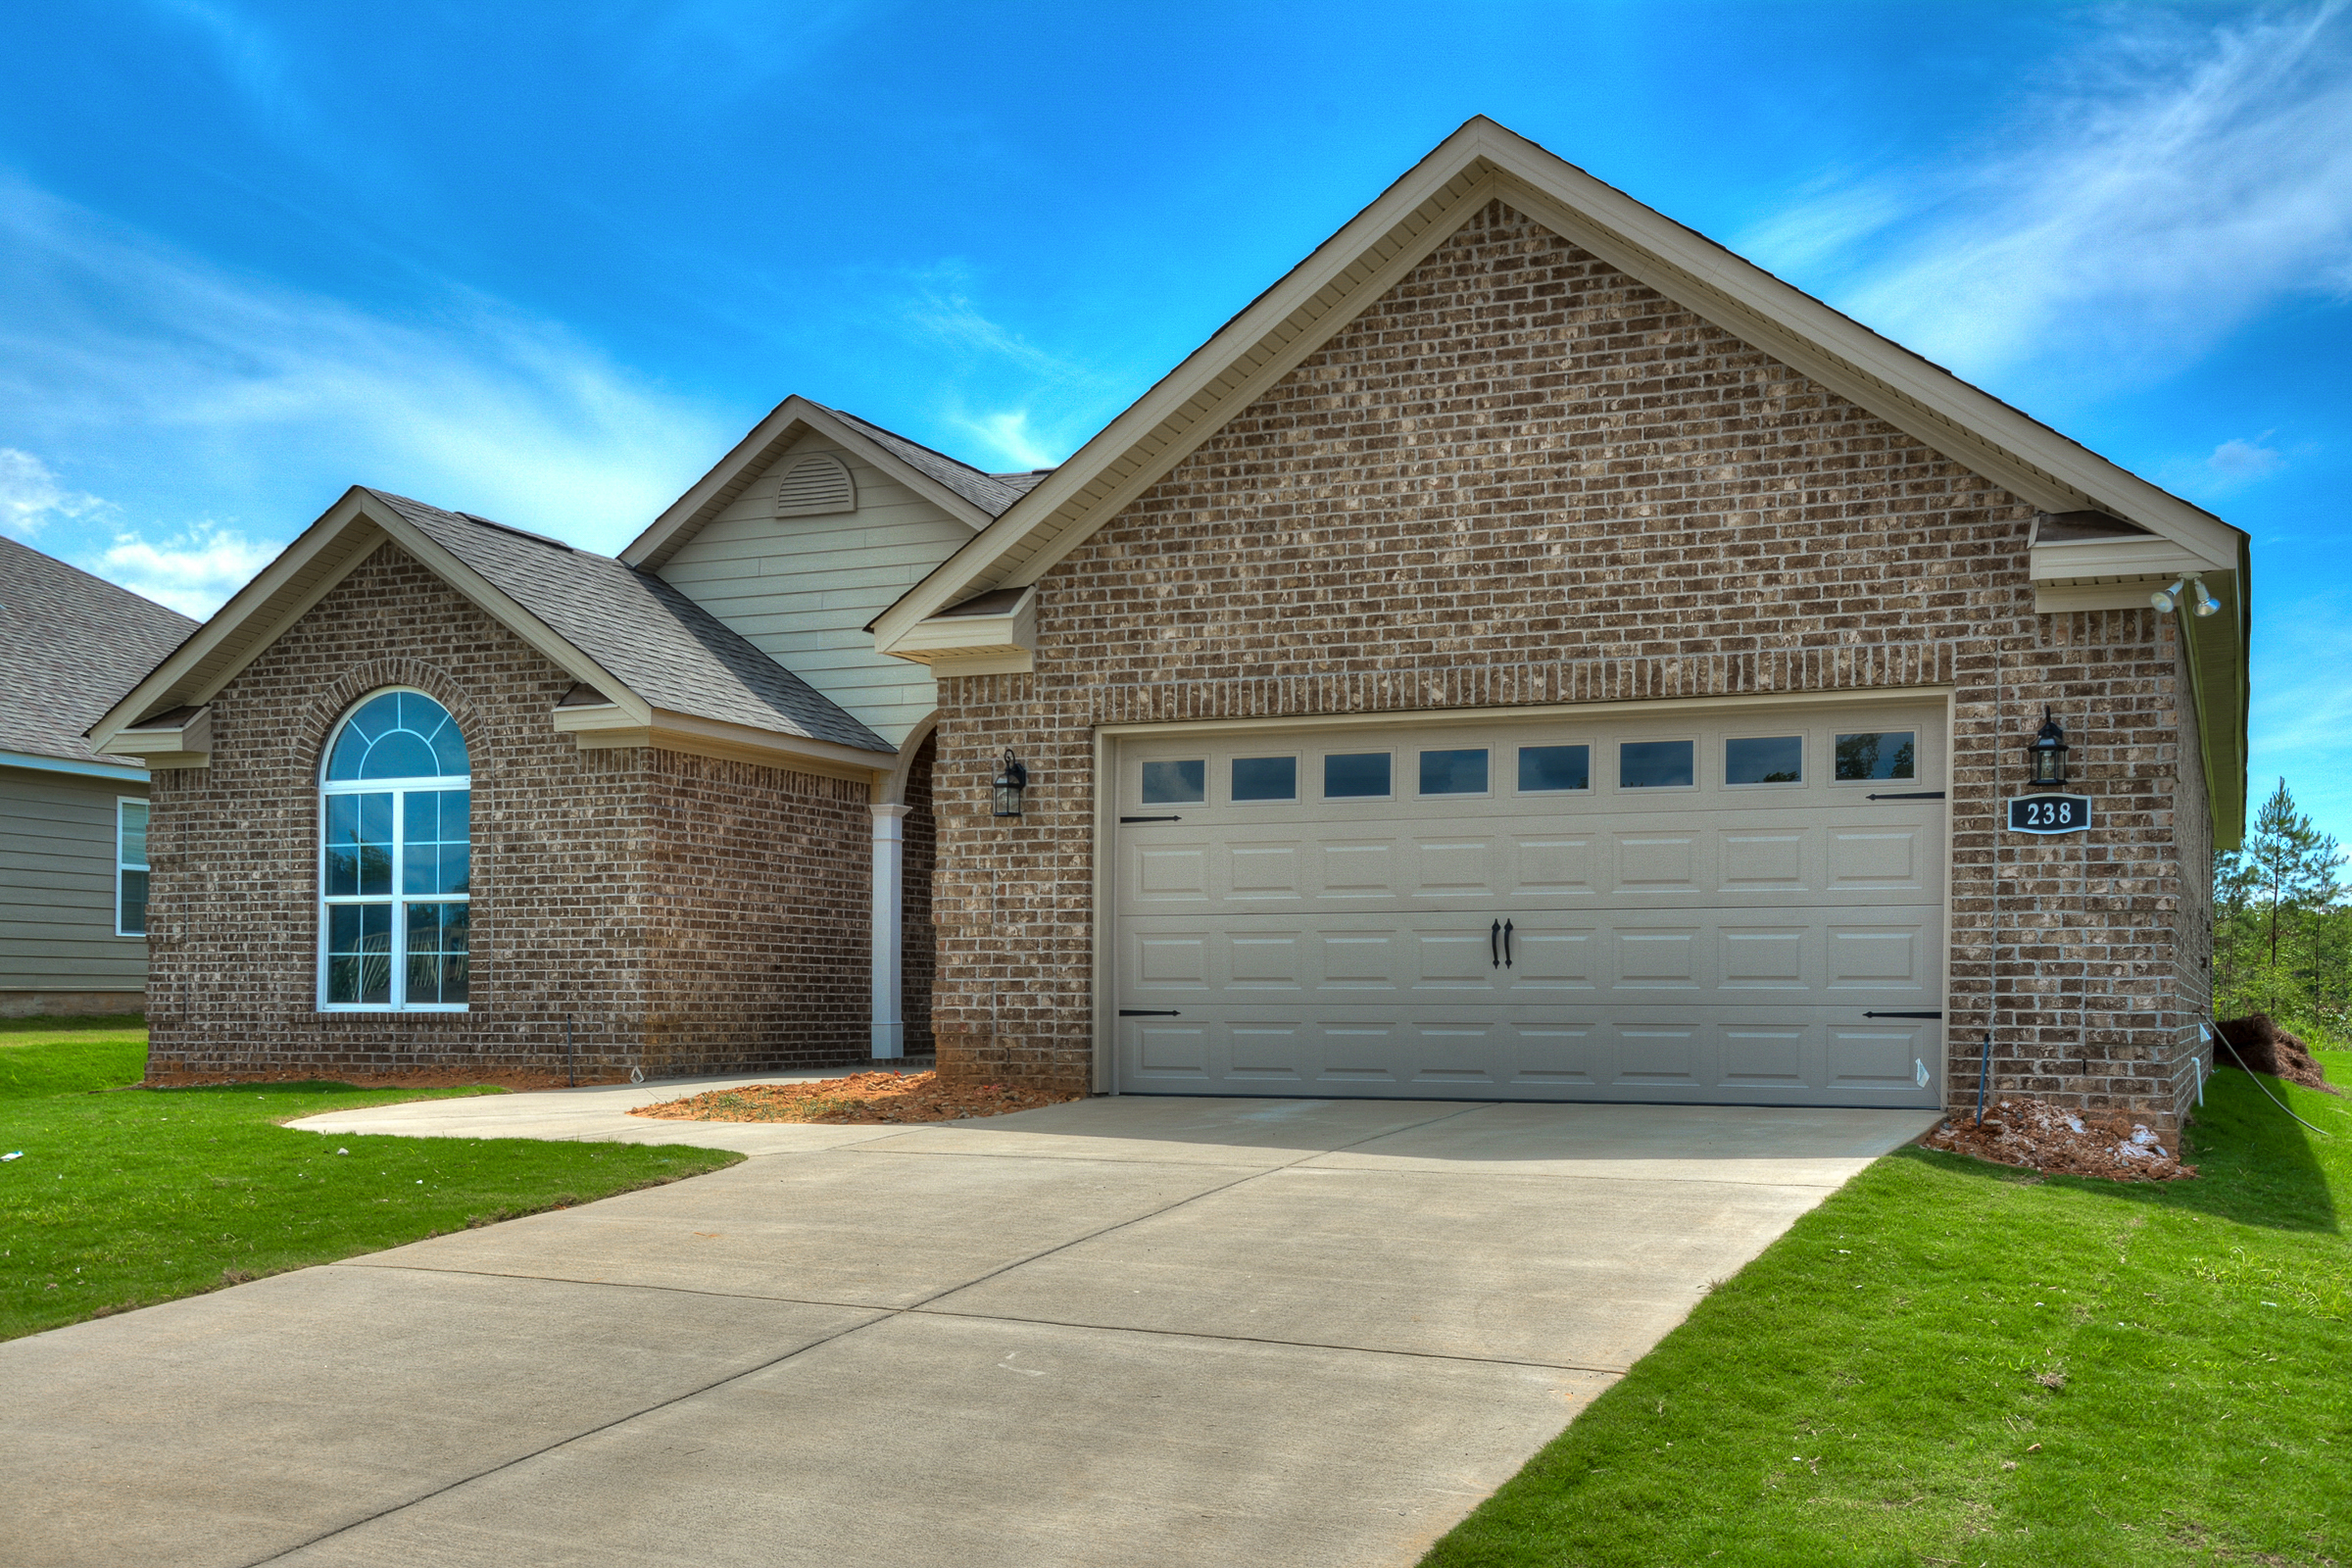 An image of the front of the home with garage in Kelarie.